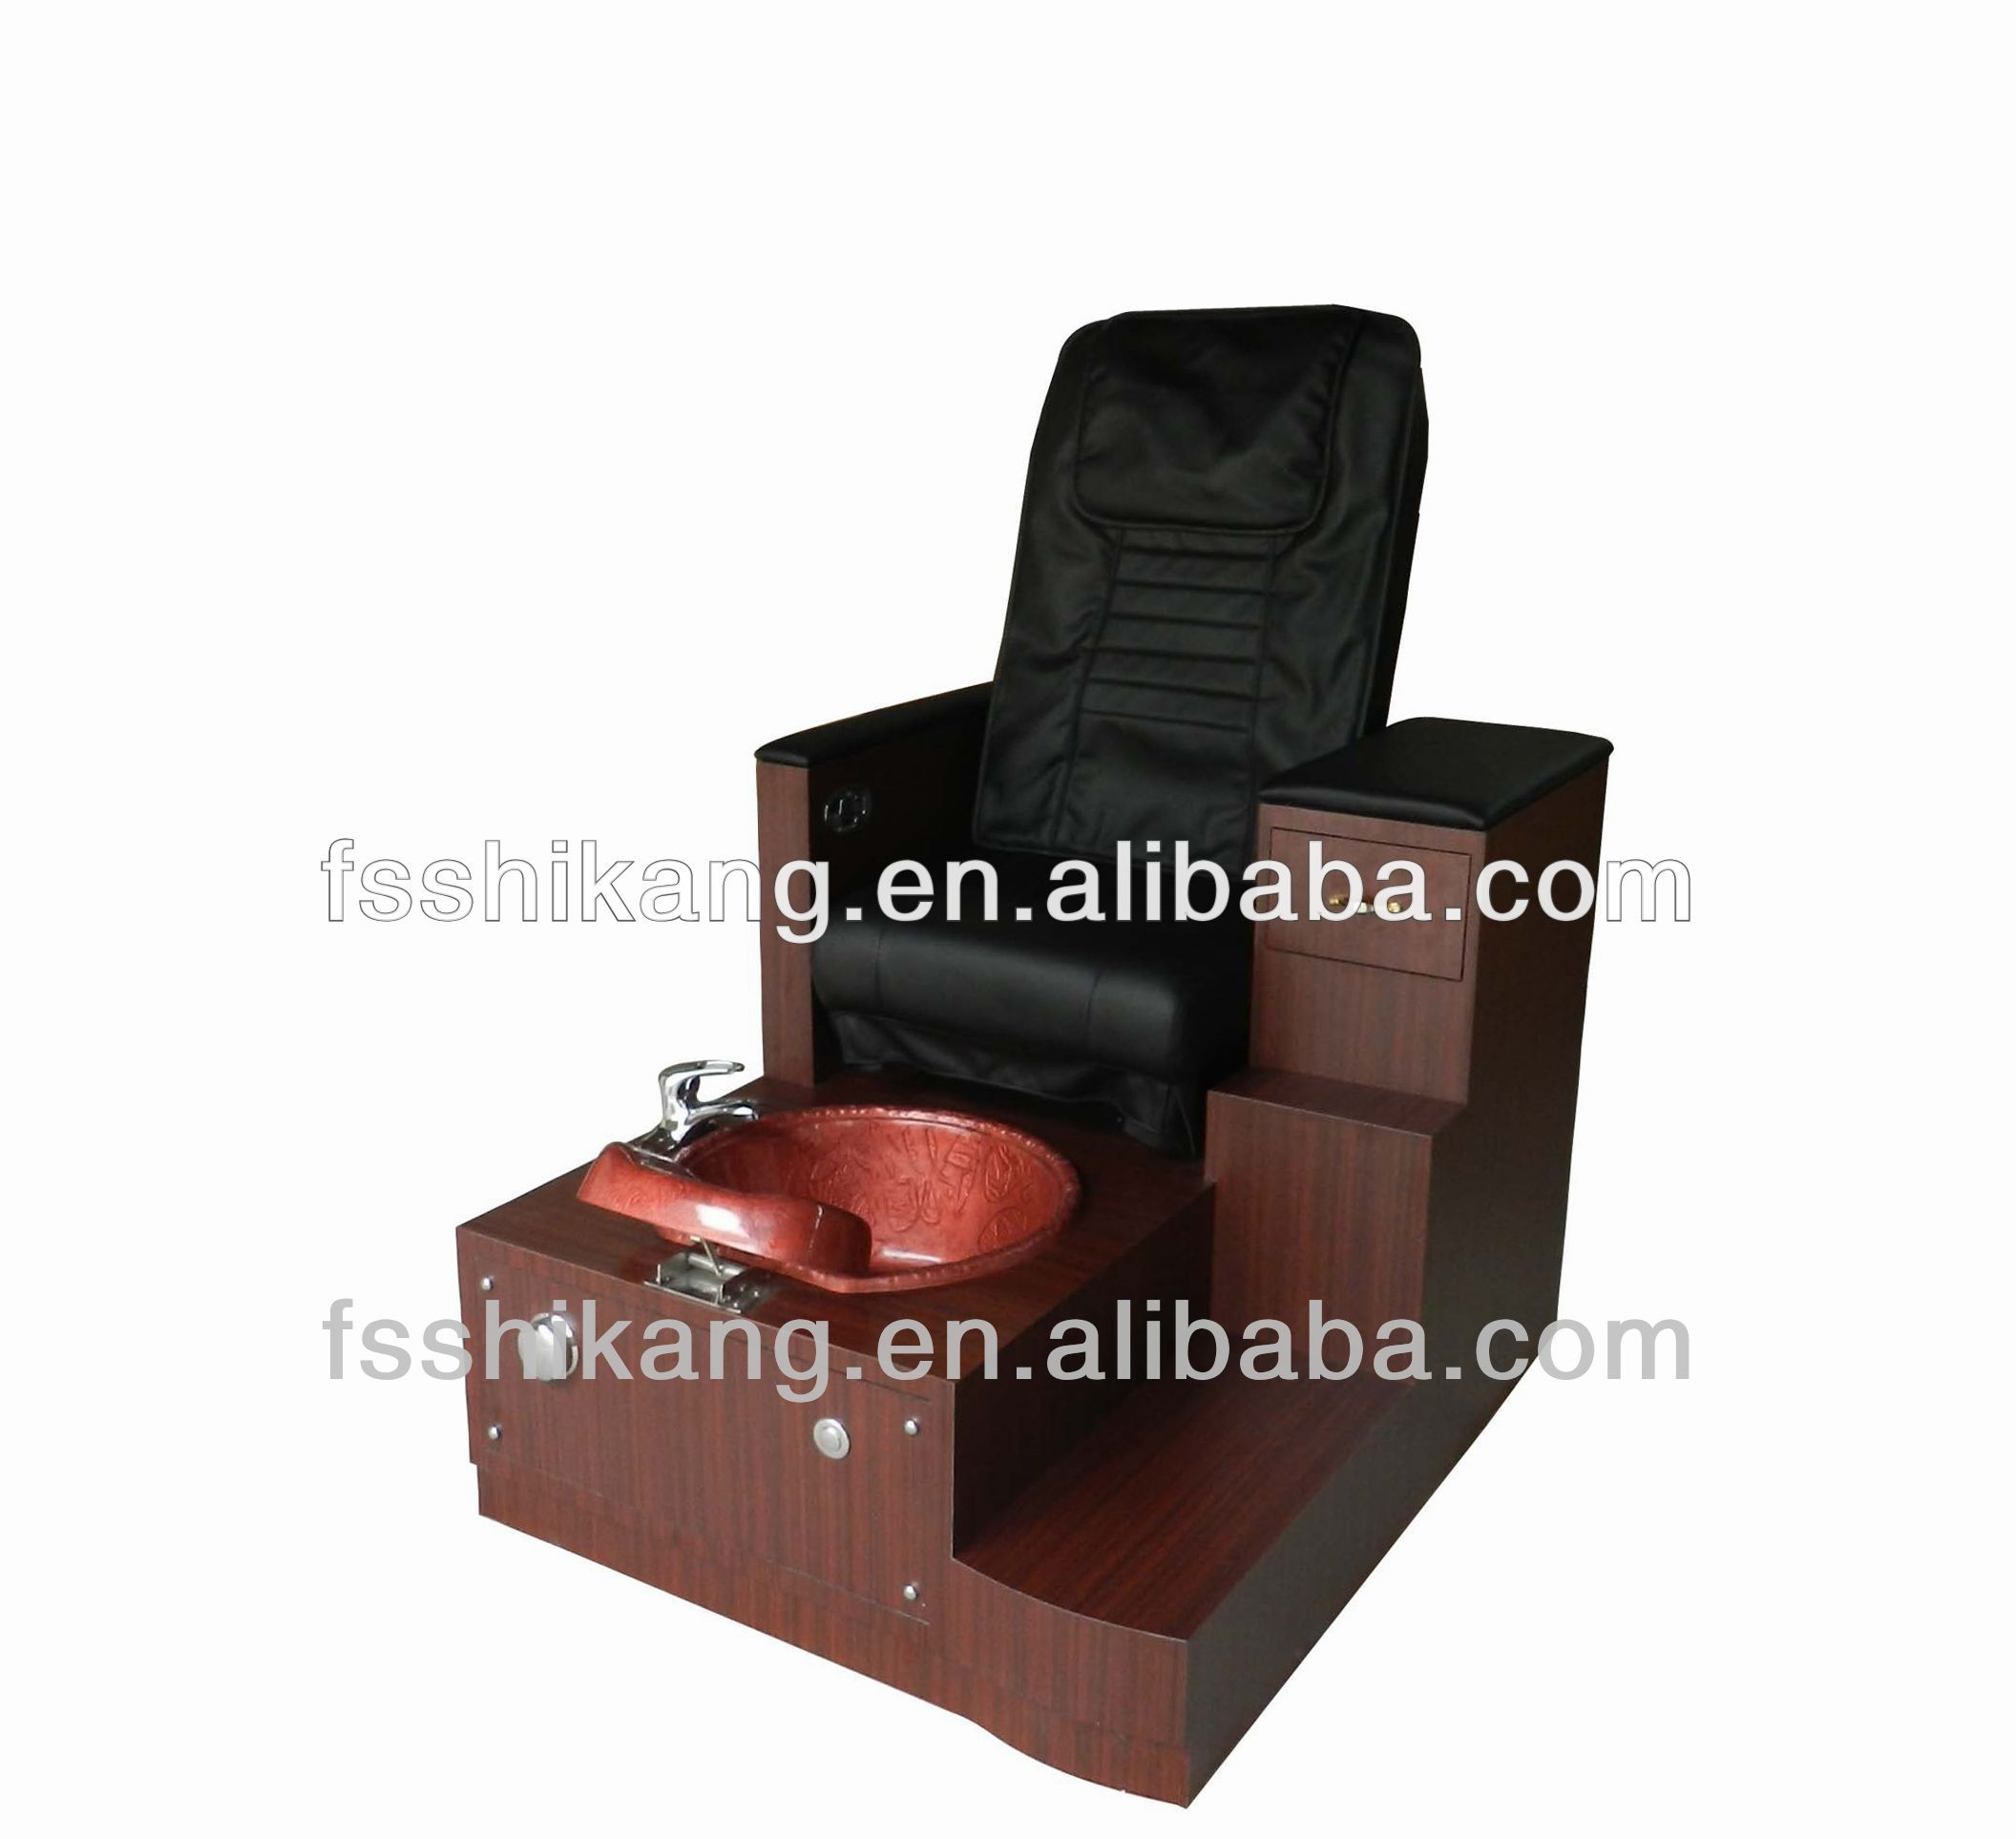 Wooden base spa pedicure chair for kid SK-8041